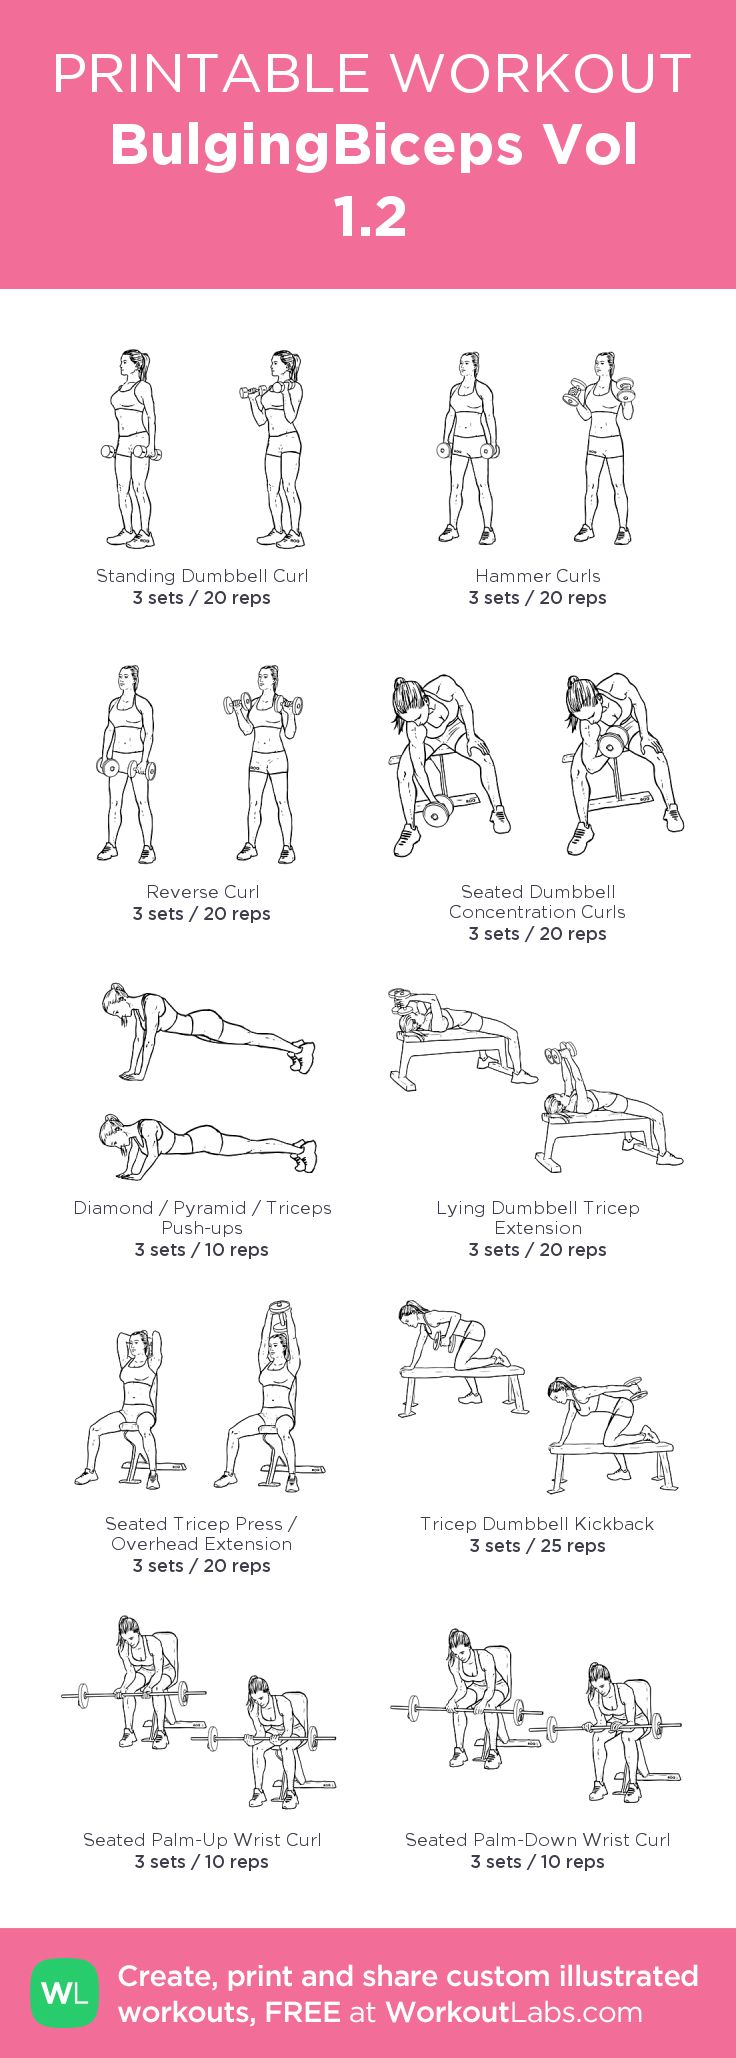 BulgingBiceps Vol 1.2:my visual workout created at WorkoutLabs.com • Click through to customize and download as a FREE PDF! #customworkout